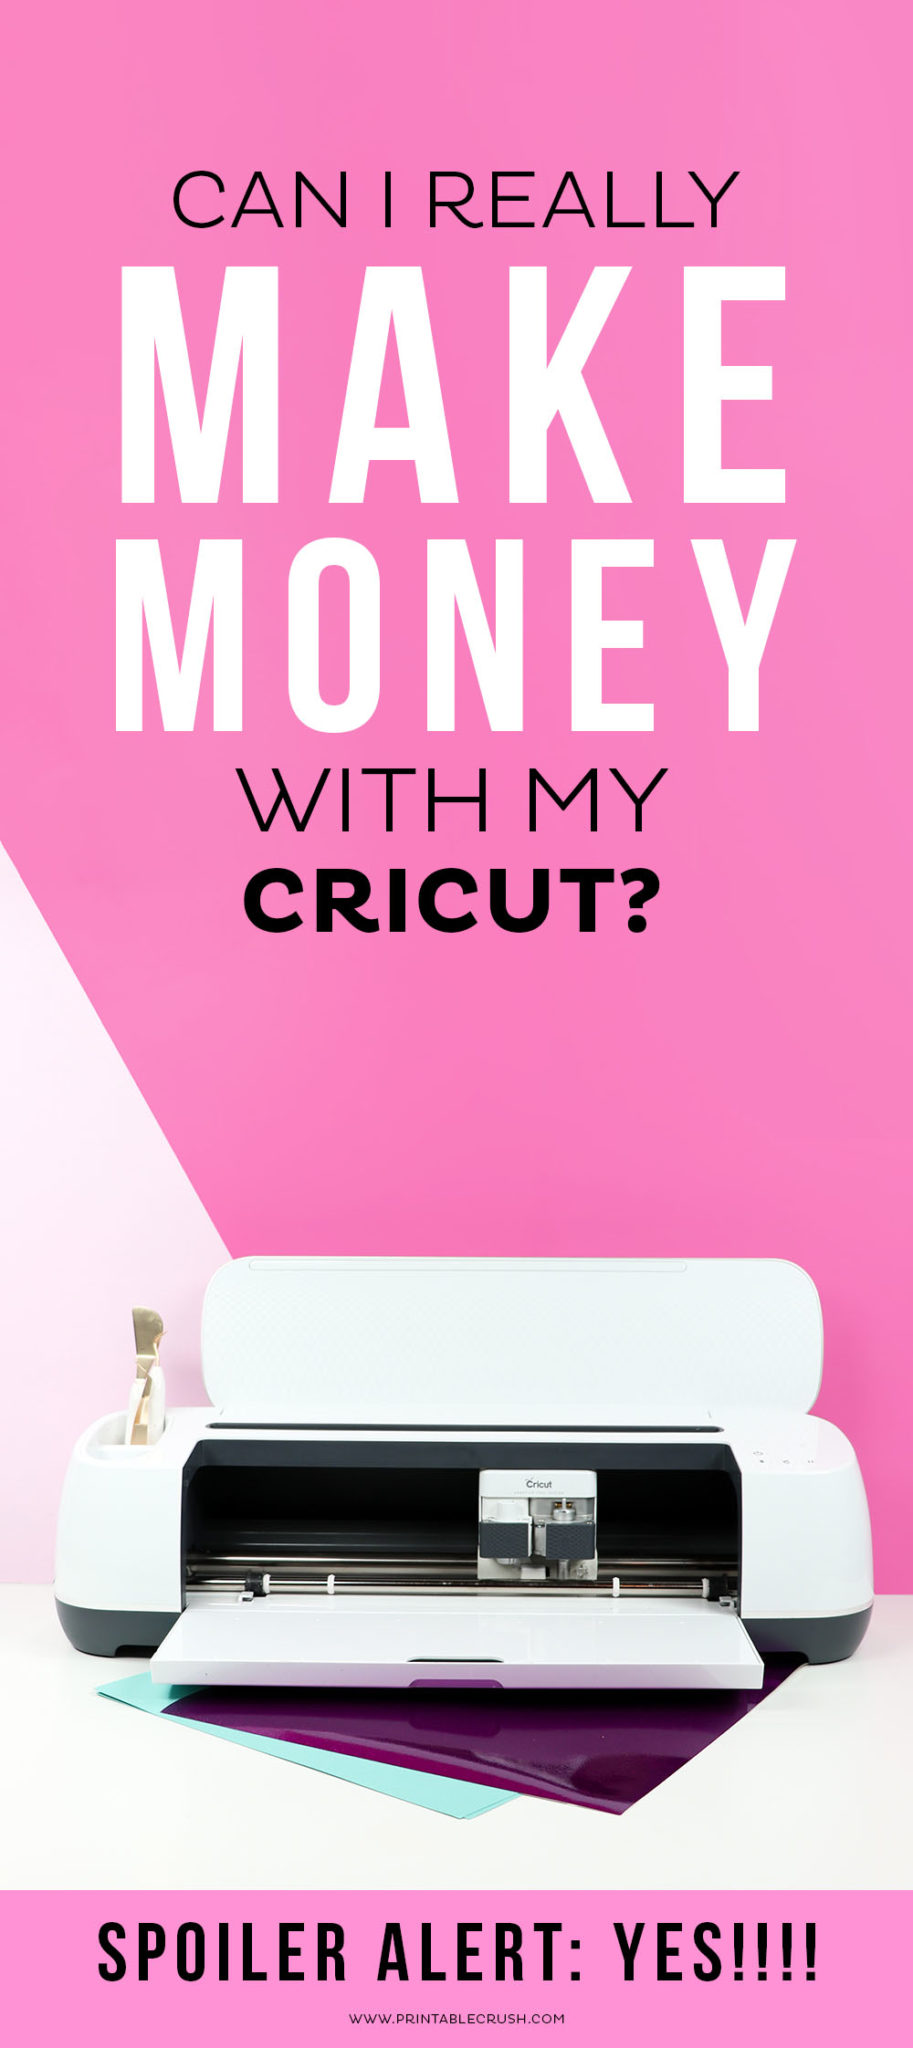 Can I Make Money with my Cricut? I'm telling you 5 ways to start right now! #cricutcreated #howtomakemoney #bloggingtips #businesstips #cricuttutorials #cricutproject #cricutbusiness #business #craftbusiness #paperbusiness via @printablecrush